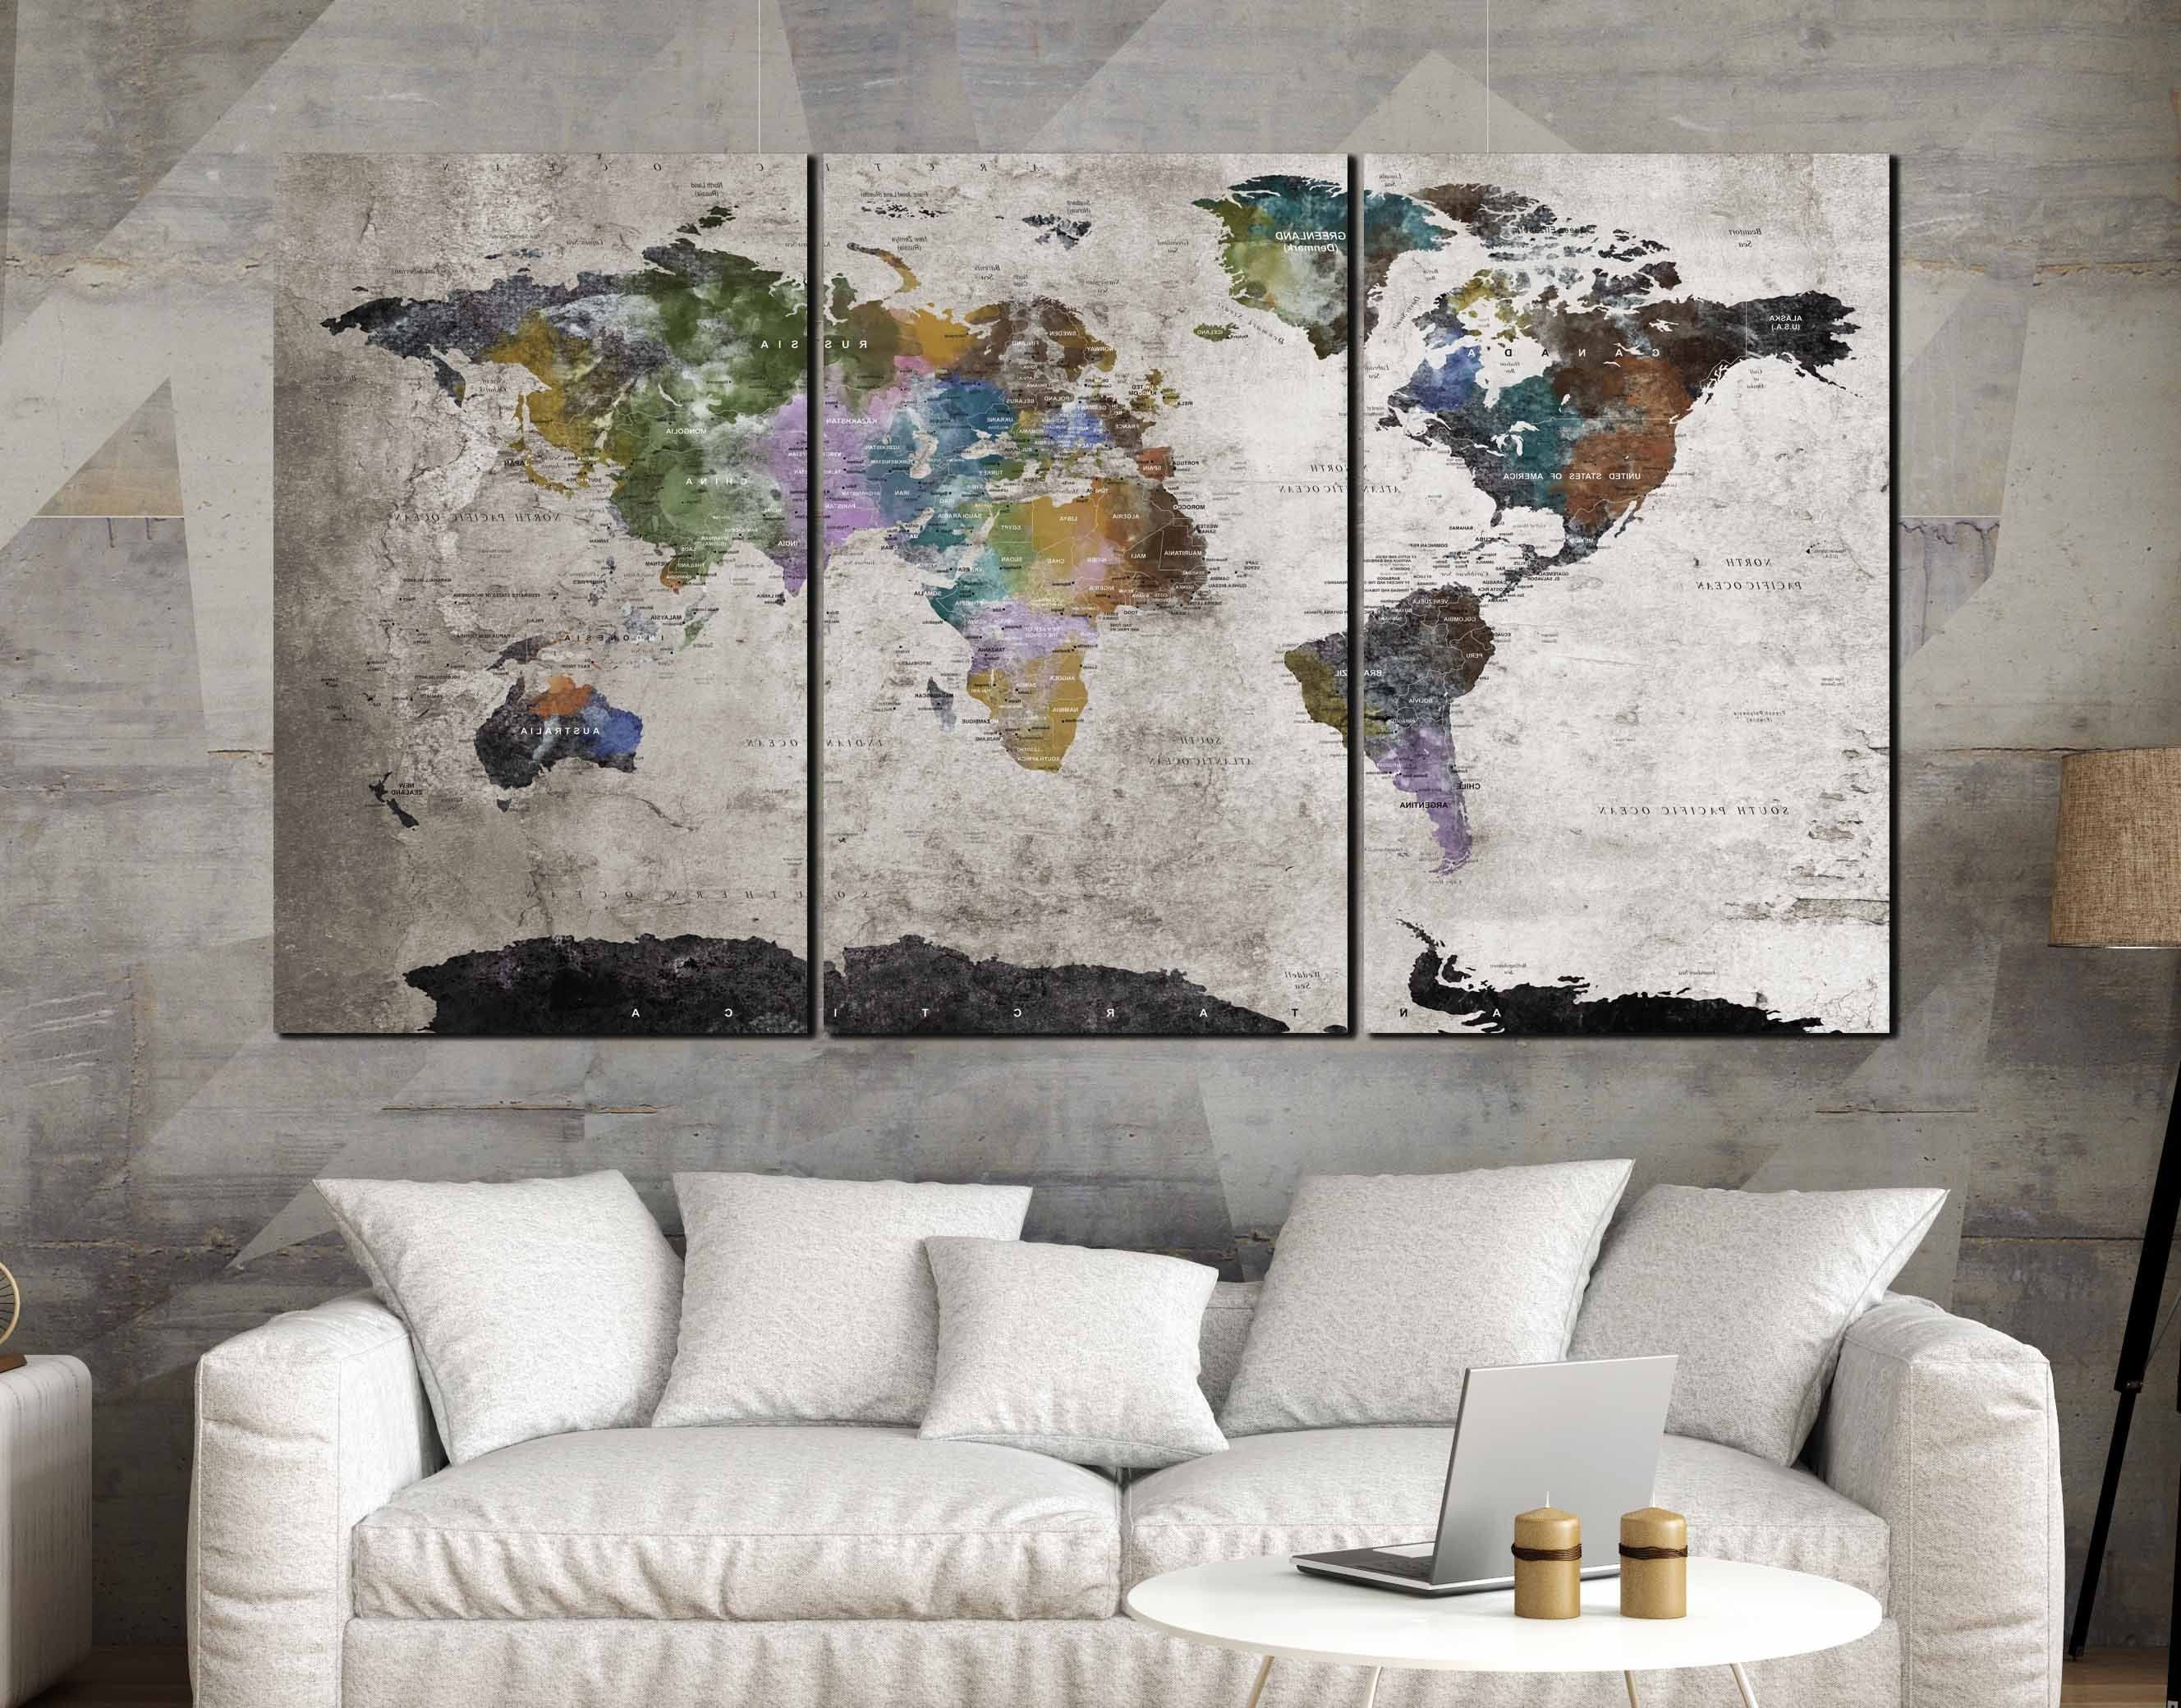 Malaysia Canvas Wall Art With Most Up To Date Highly Detailed World Map Wall Art,large World Map, World Map (View 10 of 15)